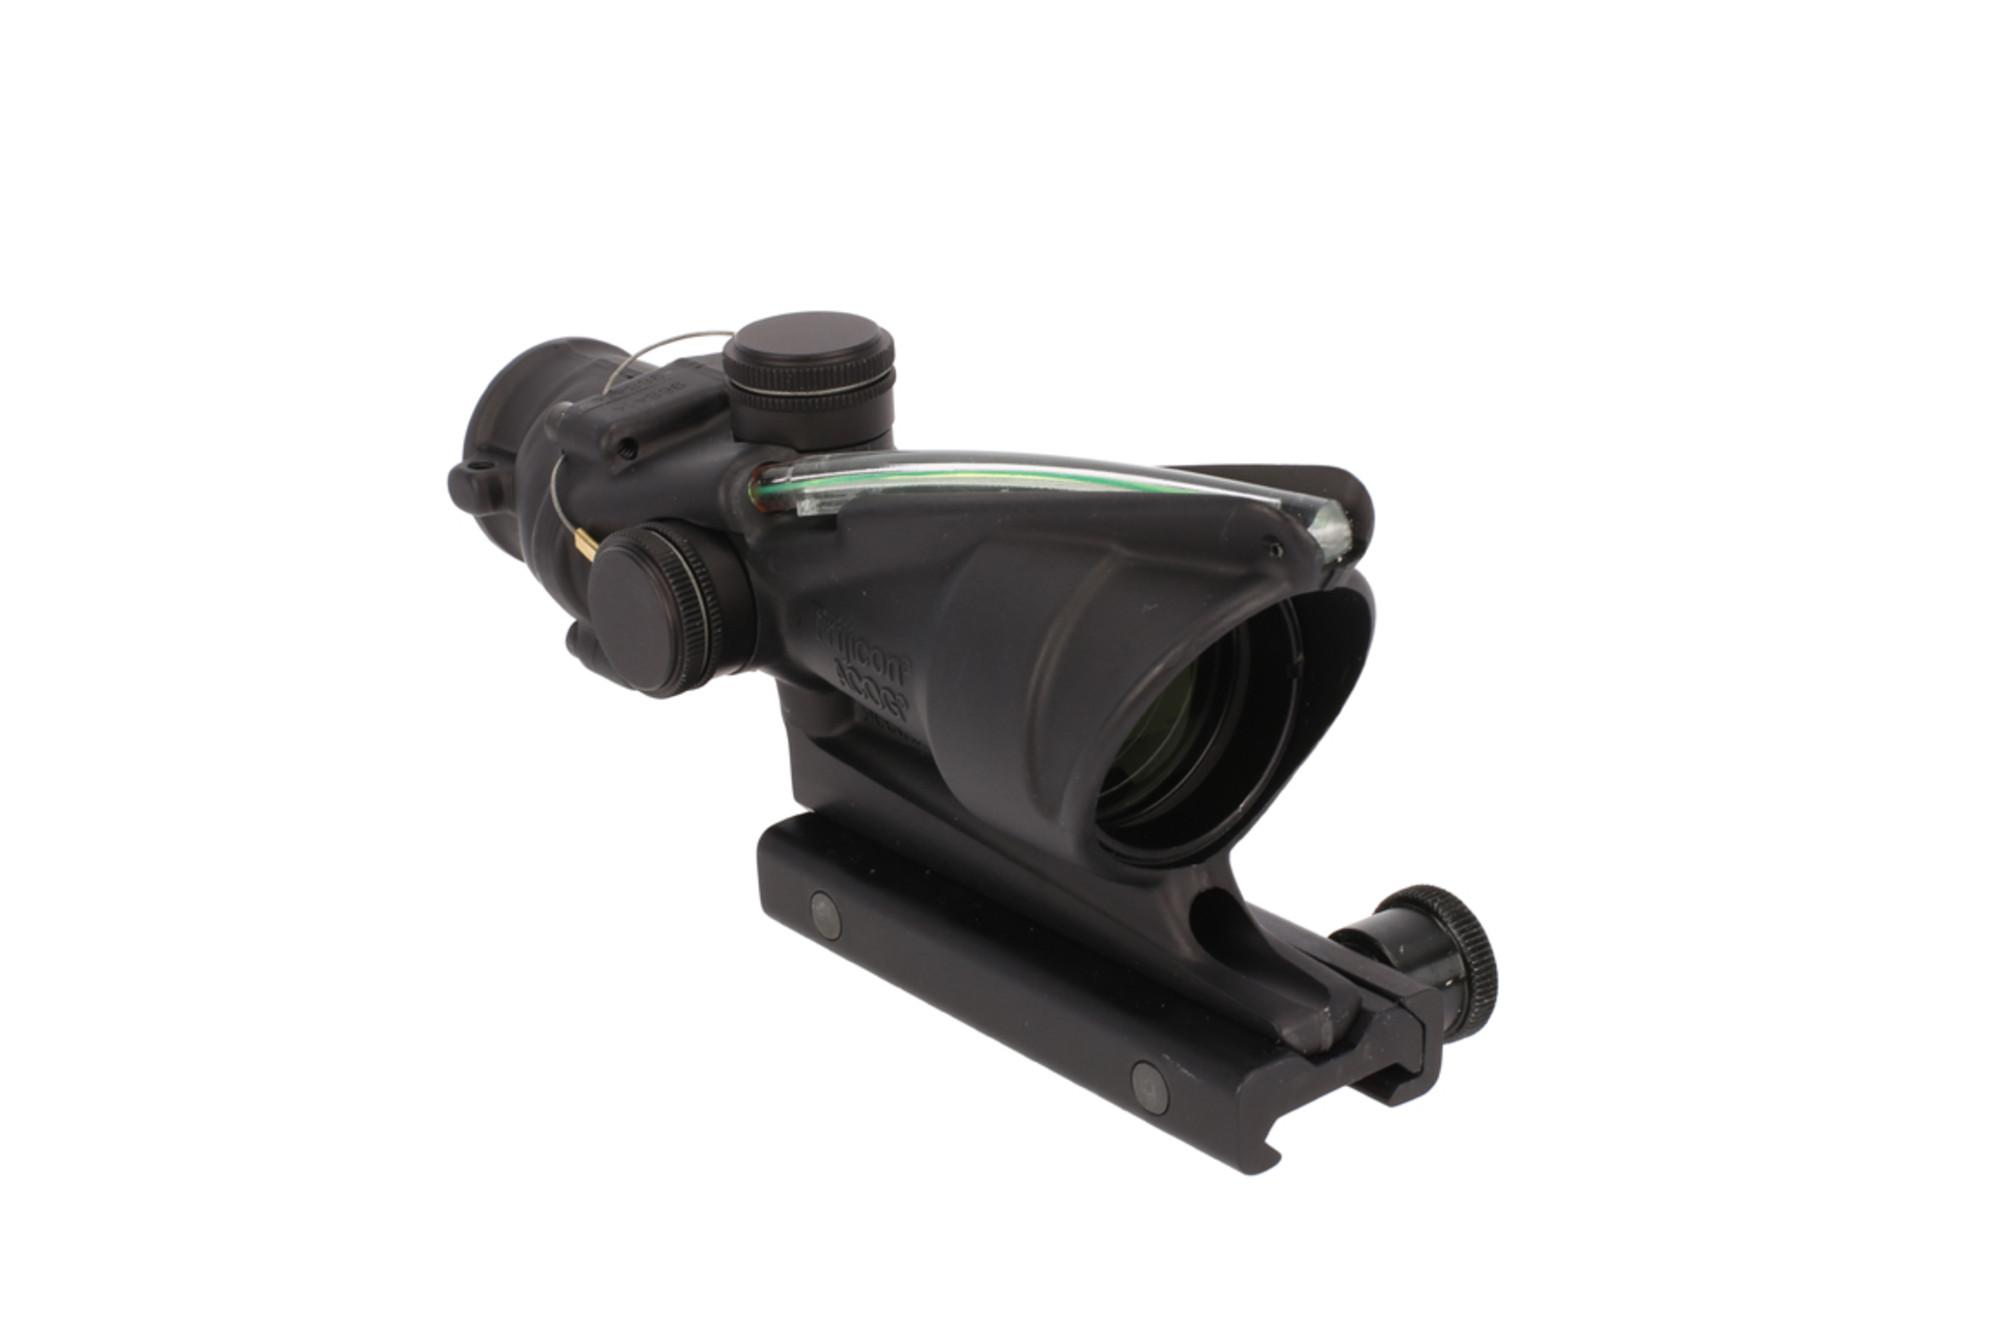 The Trijicon ACOG ACSS Aurora 4x32mm Scope with Dual Illuminated green reticle with tritium inserts